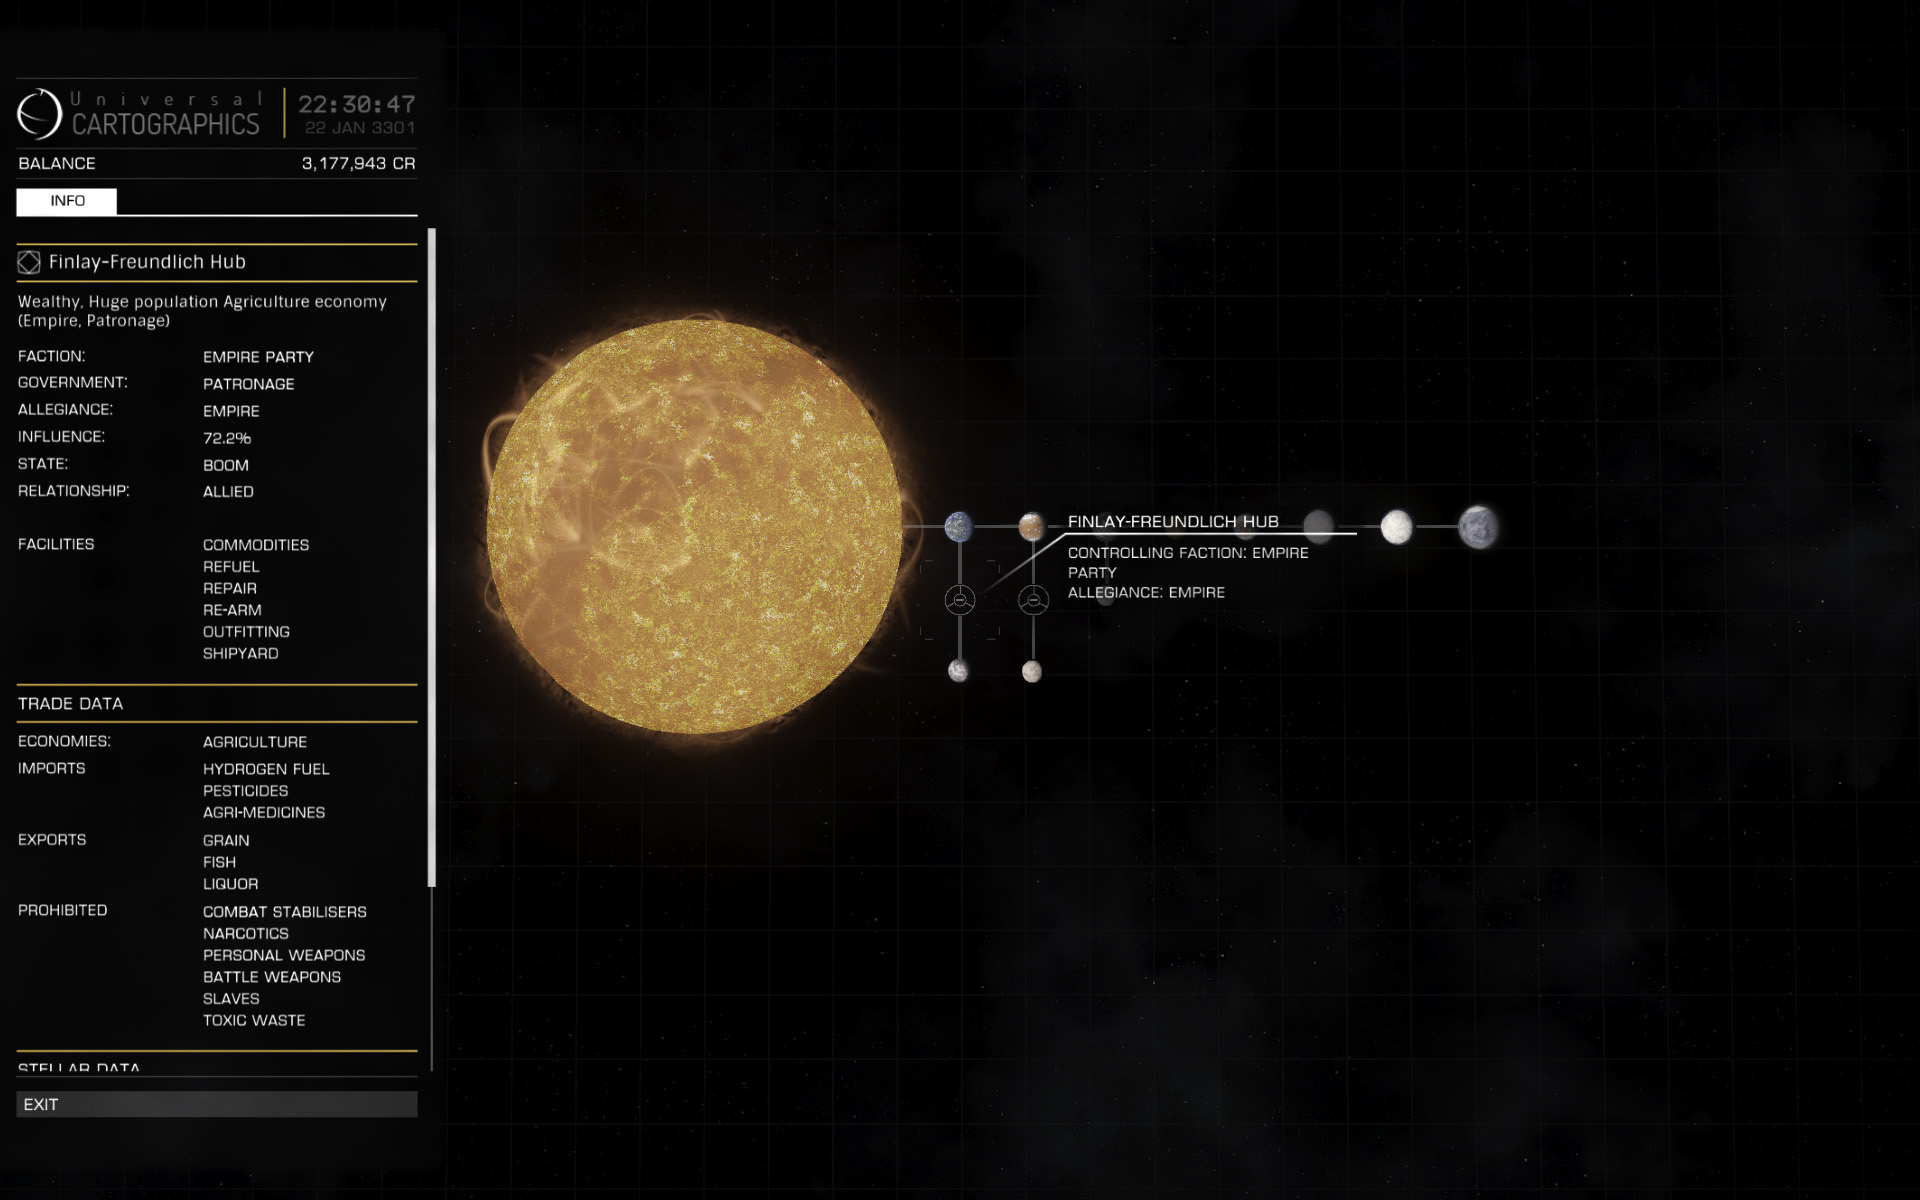 On the system map you can view imports, exports and prohibited commodities for each starport